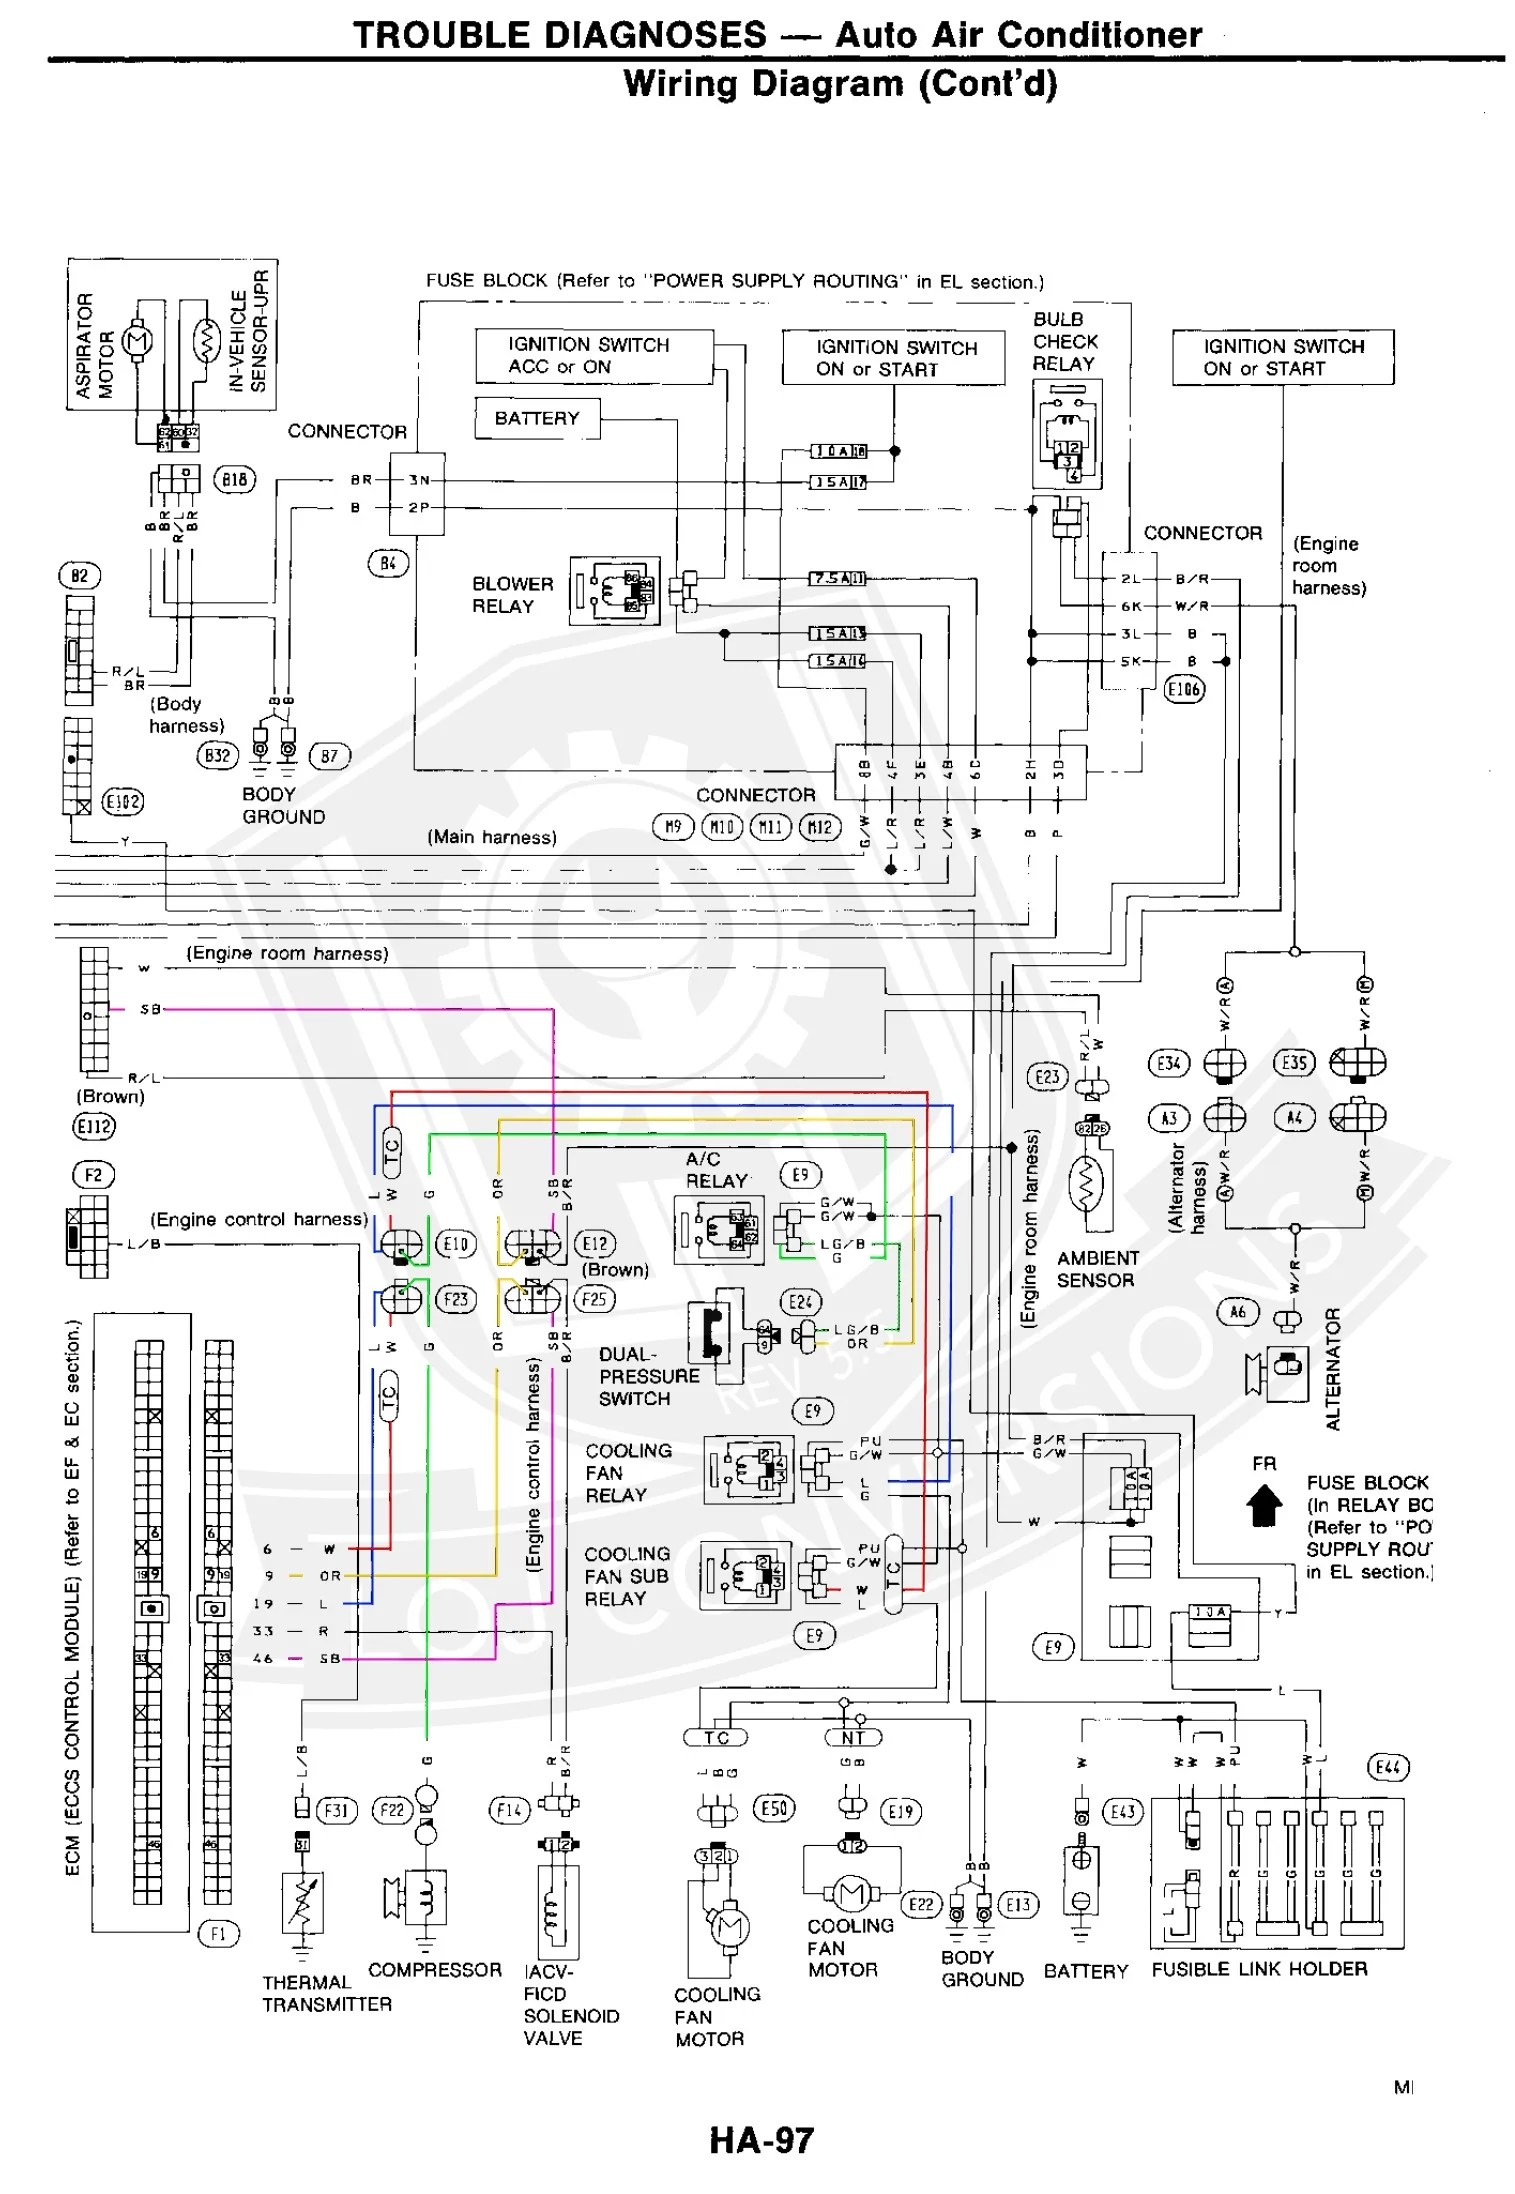 hight resolution of 300zx wire diagram wiring diagram centre 87 300zx wiring diagram